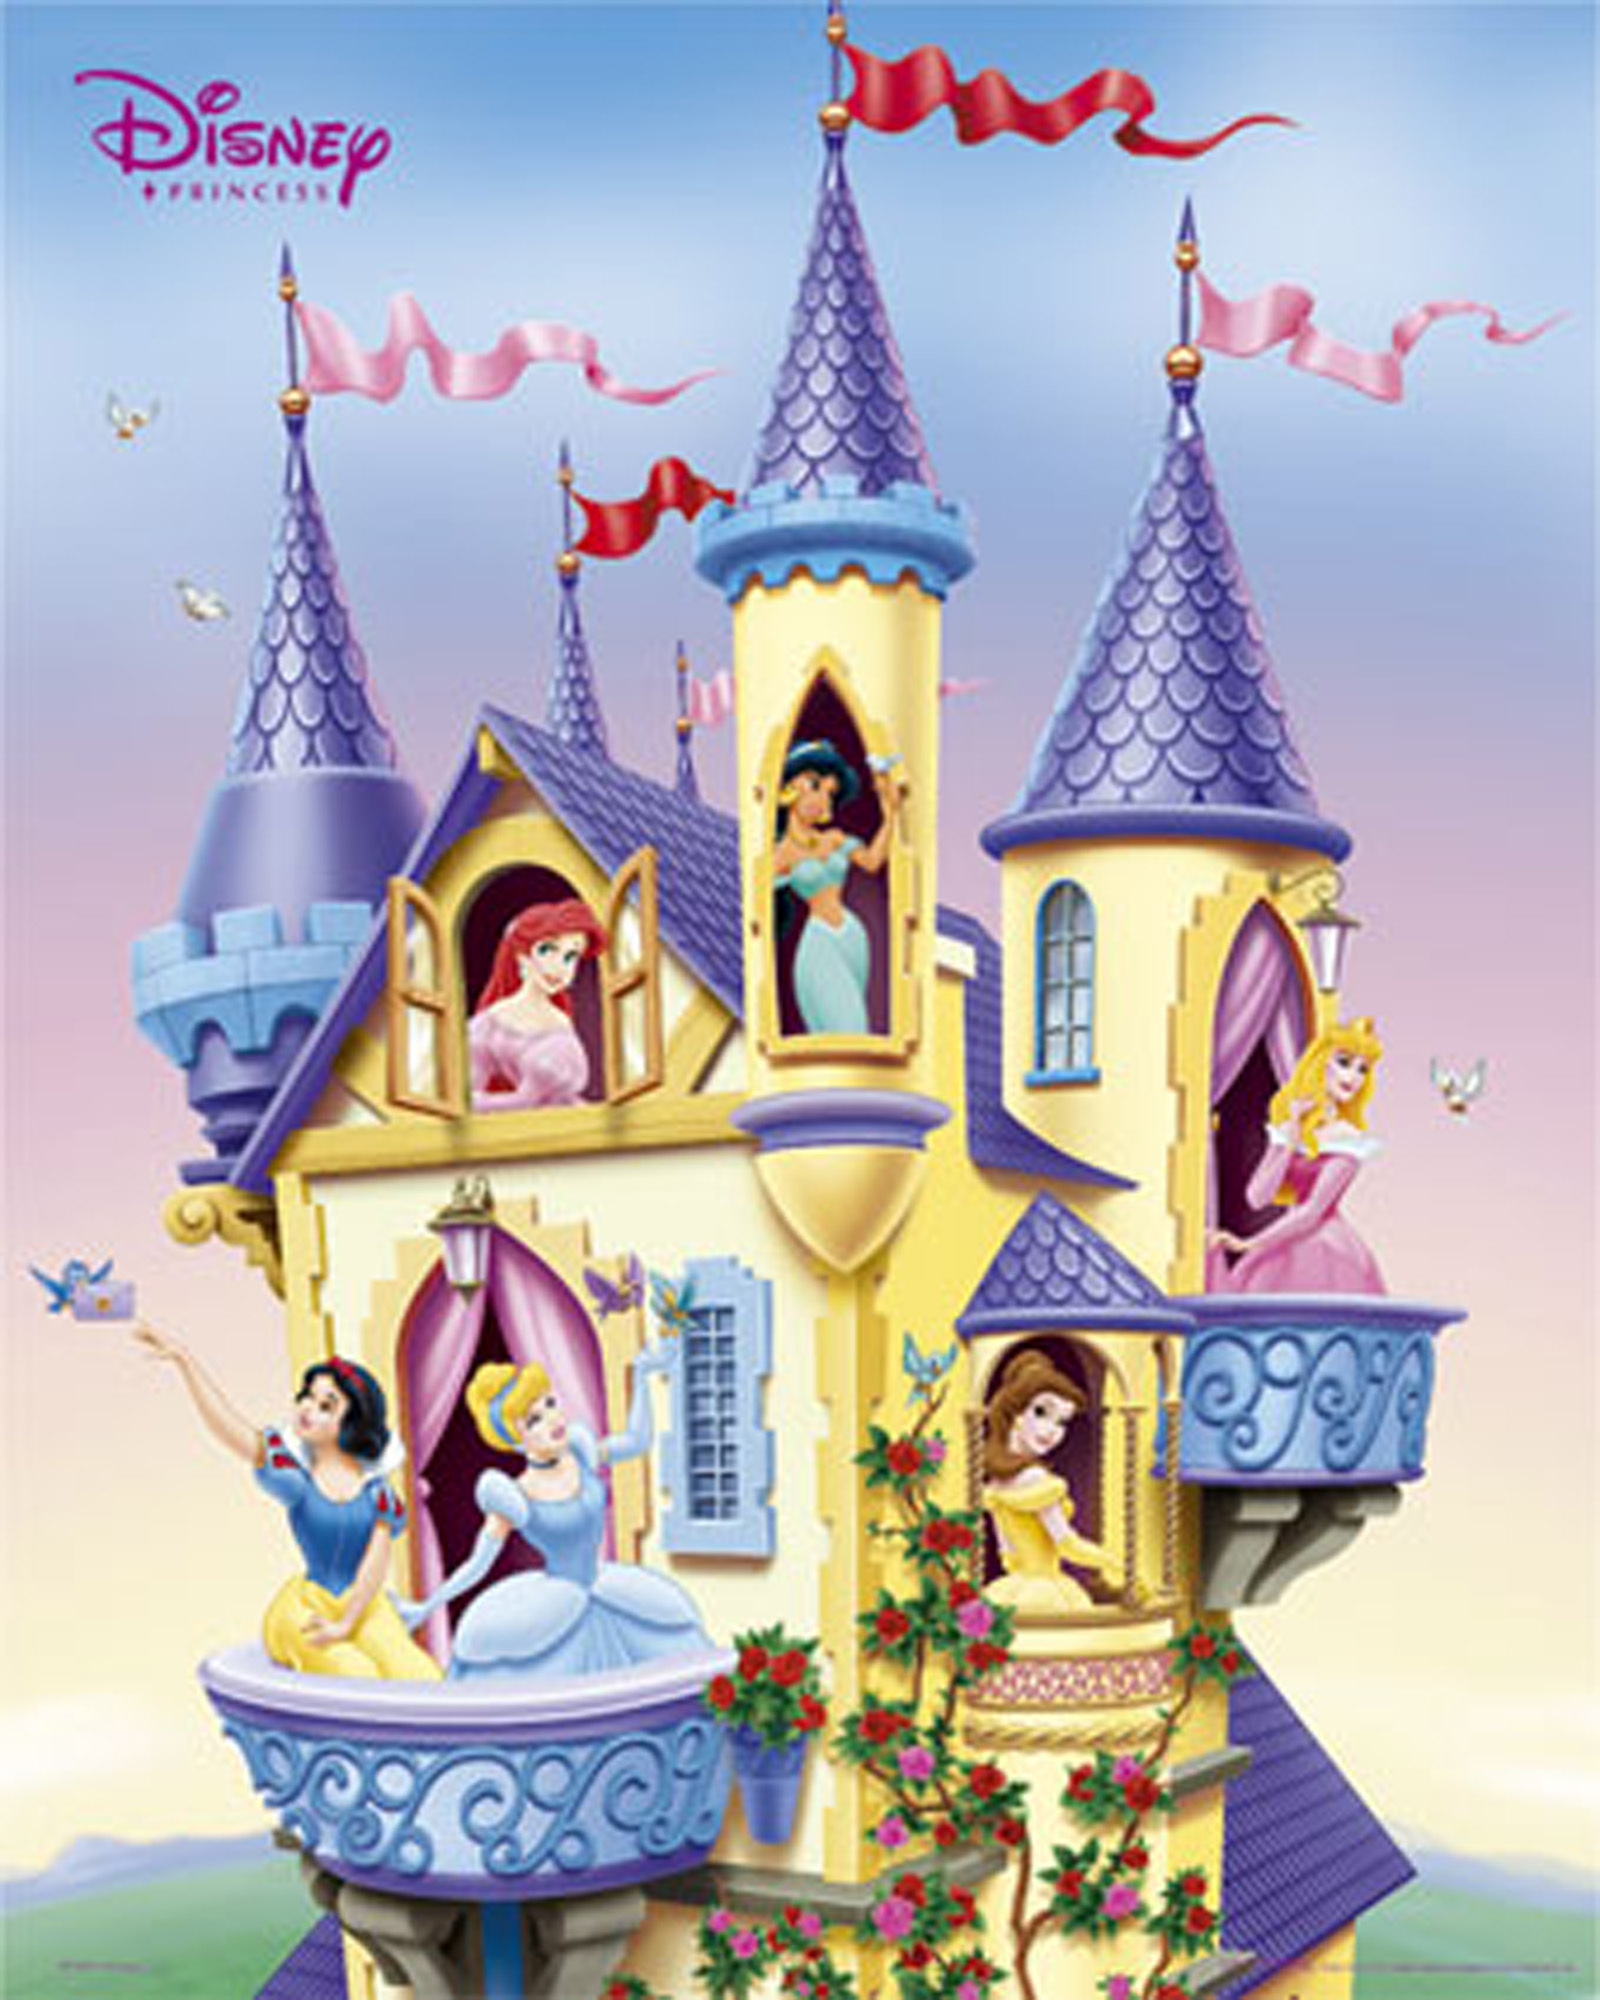 disney princess images princesses in castle hd wallpaper and background photos 9771507. Black Bedroom Furniture Sets. Home Design Ideas